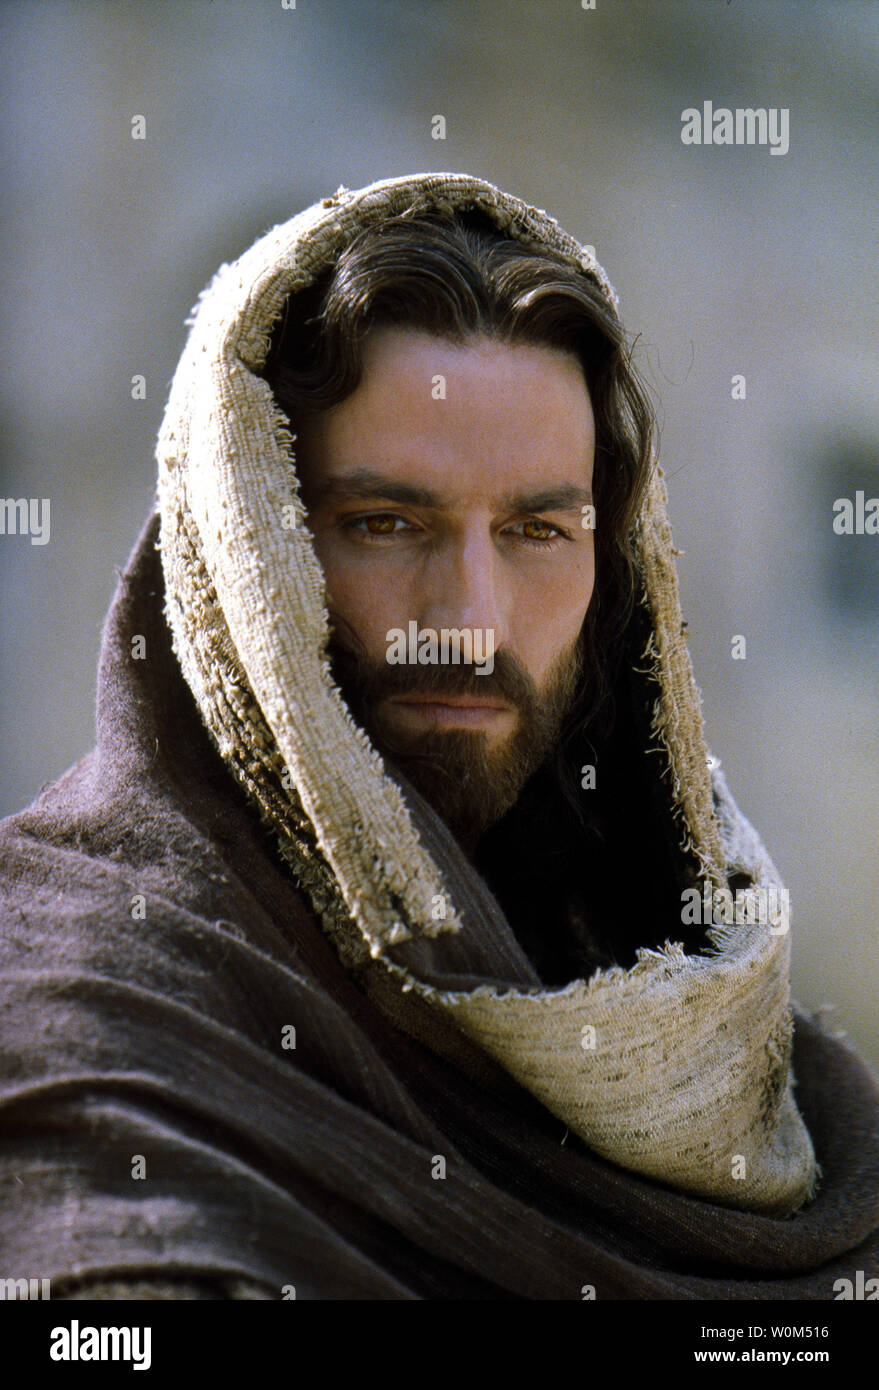 Jesus Jim Caviezel In A Scene From The Passion Of The Christ Mel Gibson S Controversial New Film About The Last Twelve Hours Of Christ S Life Critics Charge The Film Is Anti Semitic And